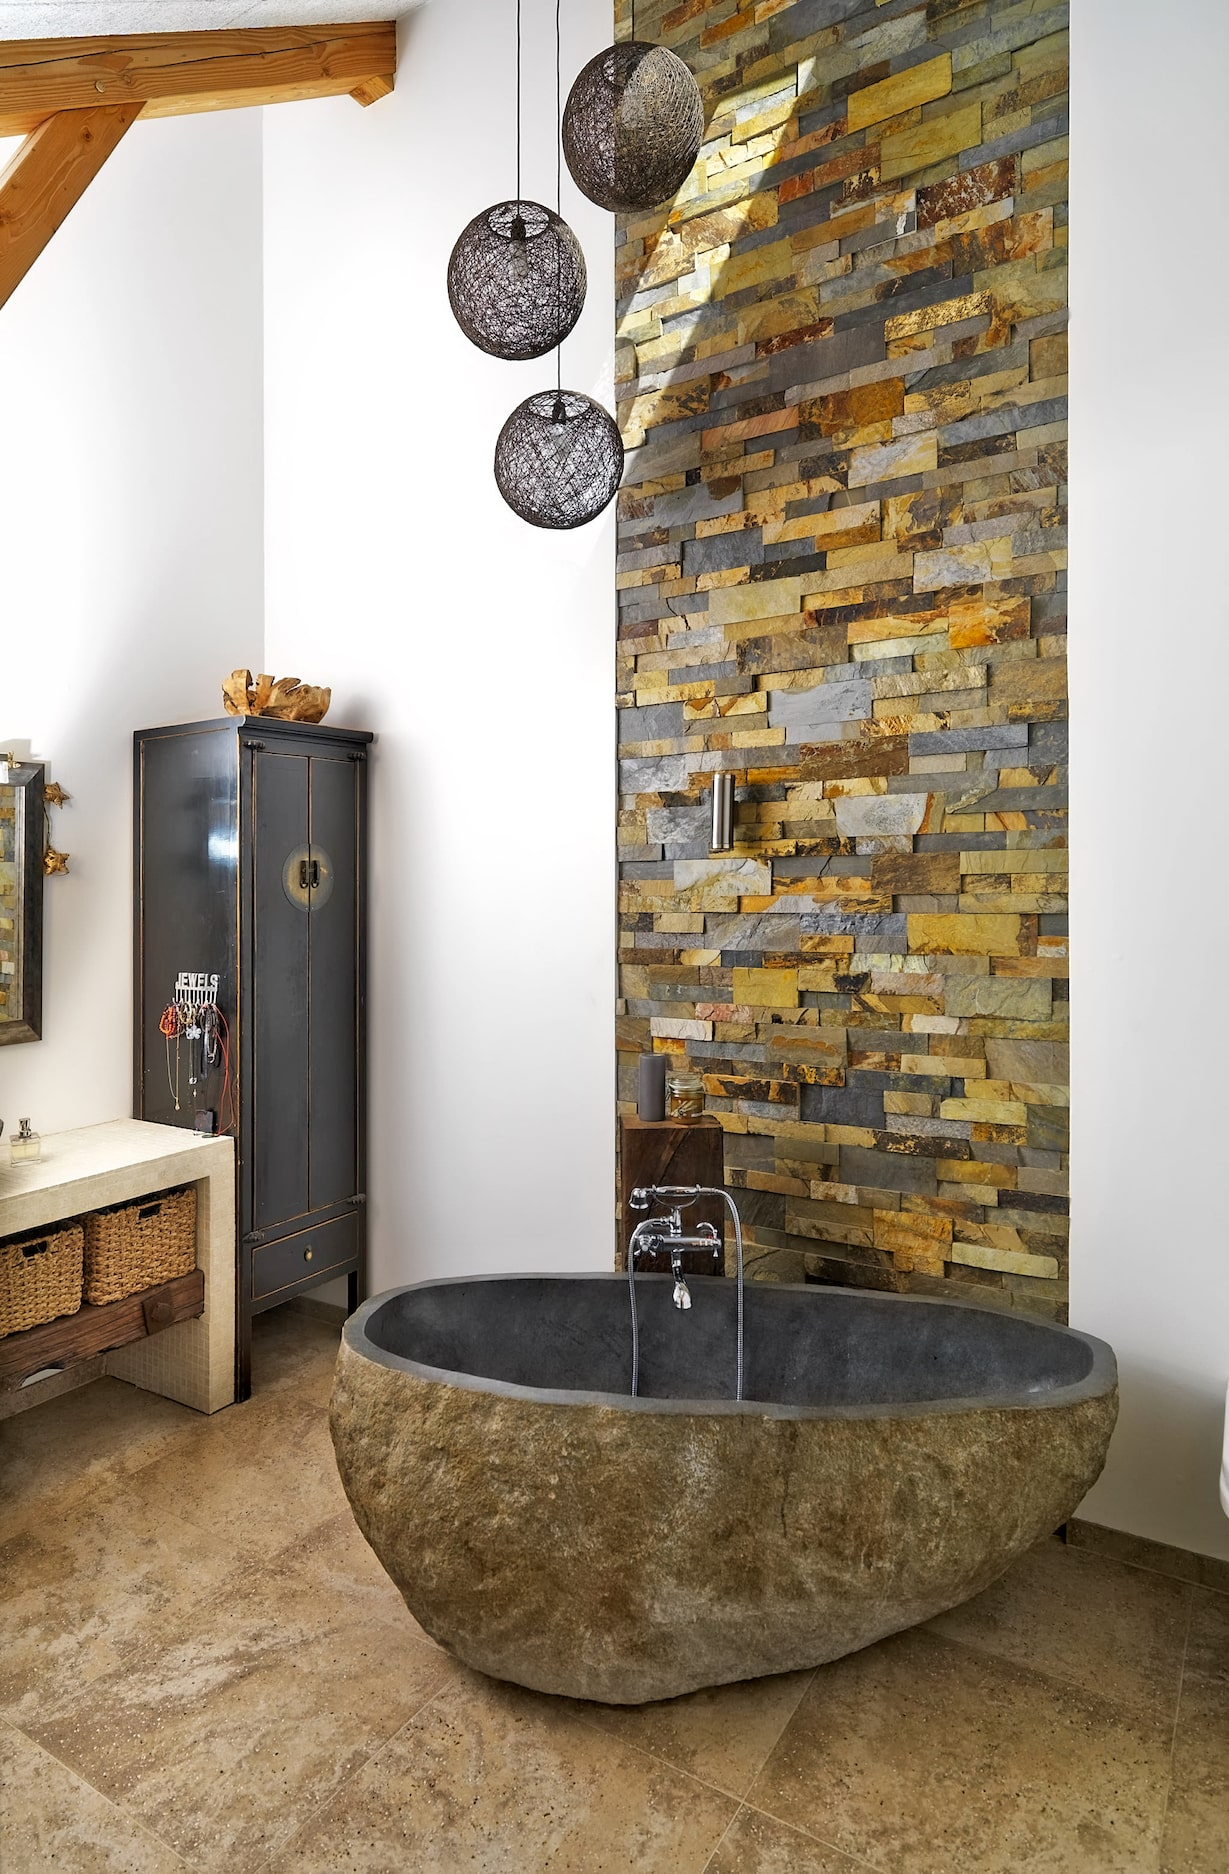 Norstone Ochre XL Feature Wall in a bathroom feauturing a freestanding one piece natural stone tub